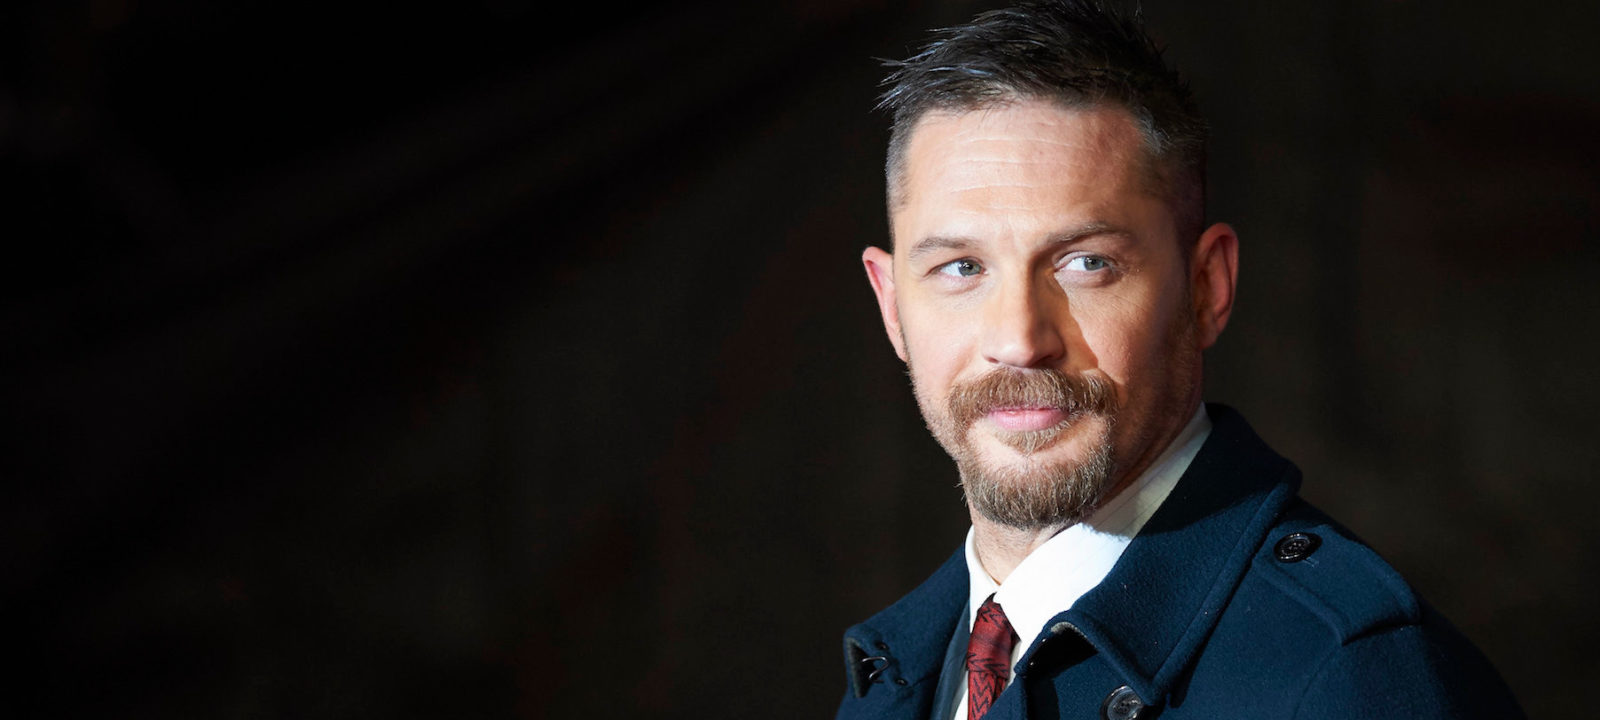 British actor Tom Hardy poses on arrival for the premiere of the film 'The Revenant' in London on January 14, 2016.